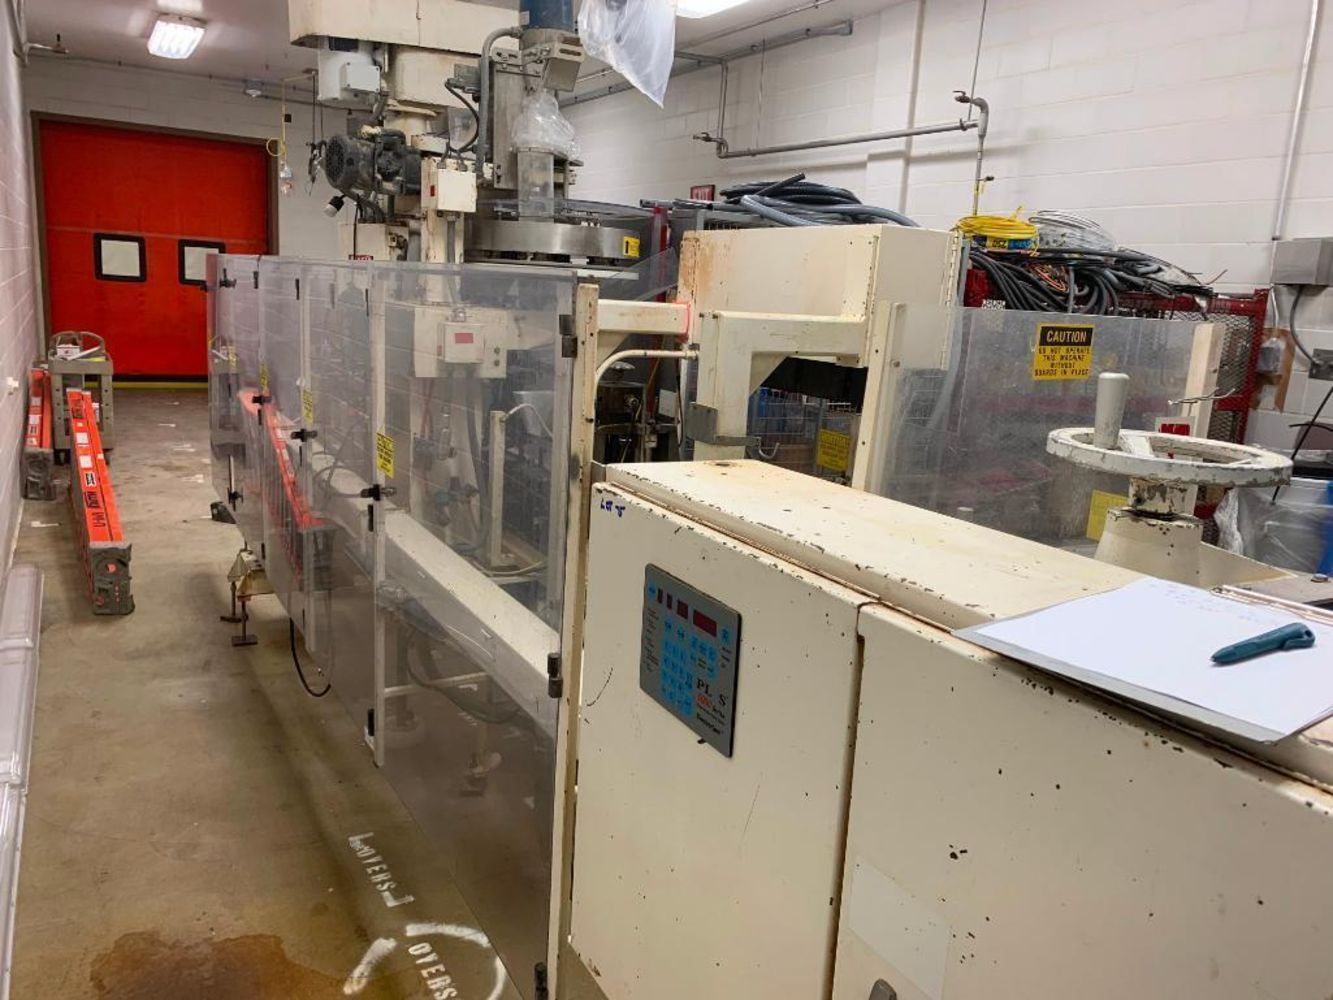 Corporate Auction Group and TreeHouse Foods Inc. offer packaging, bottle filling, snack food manufacturing and packaging equipment at auction